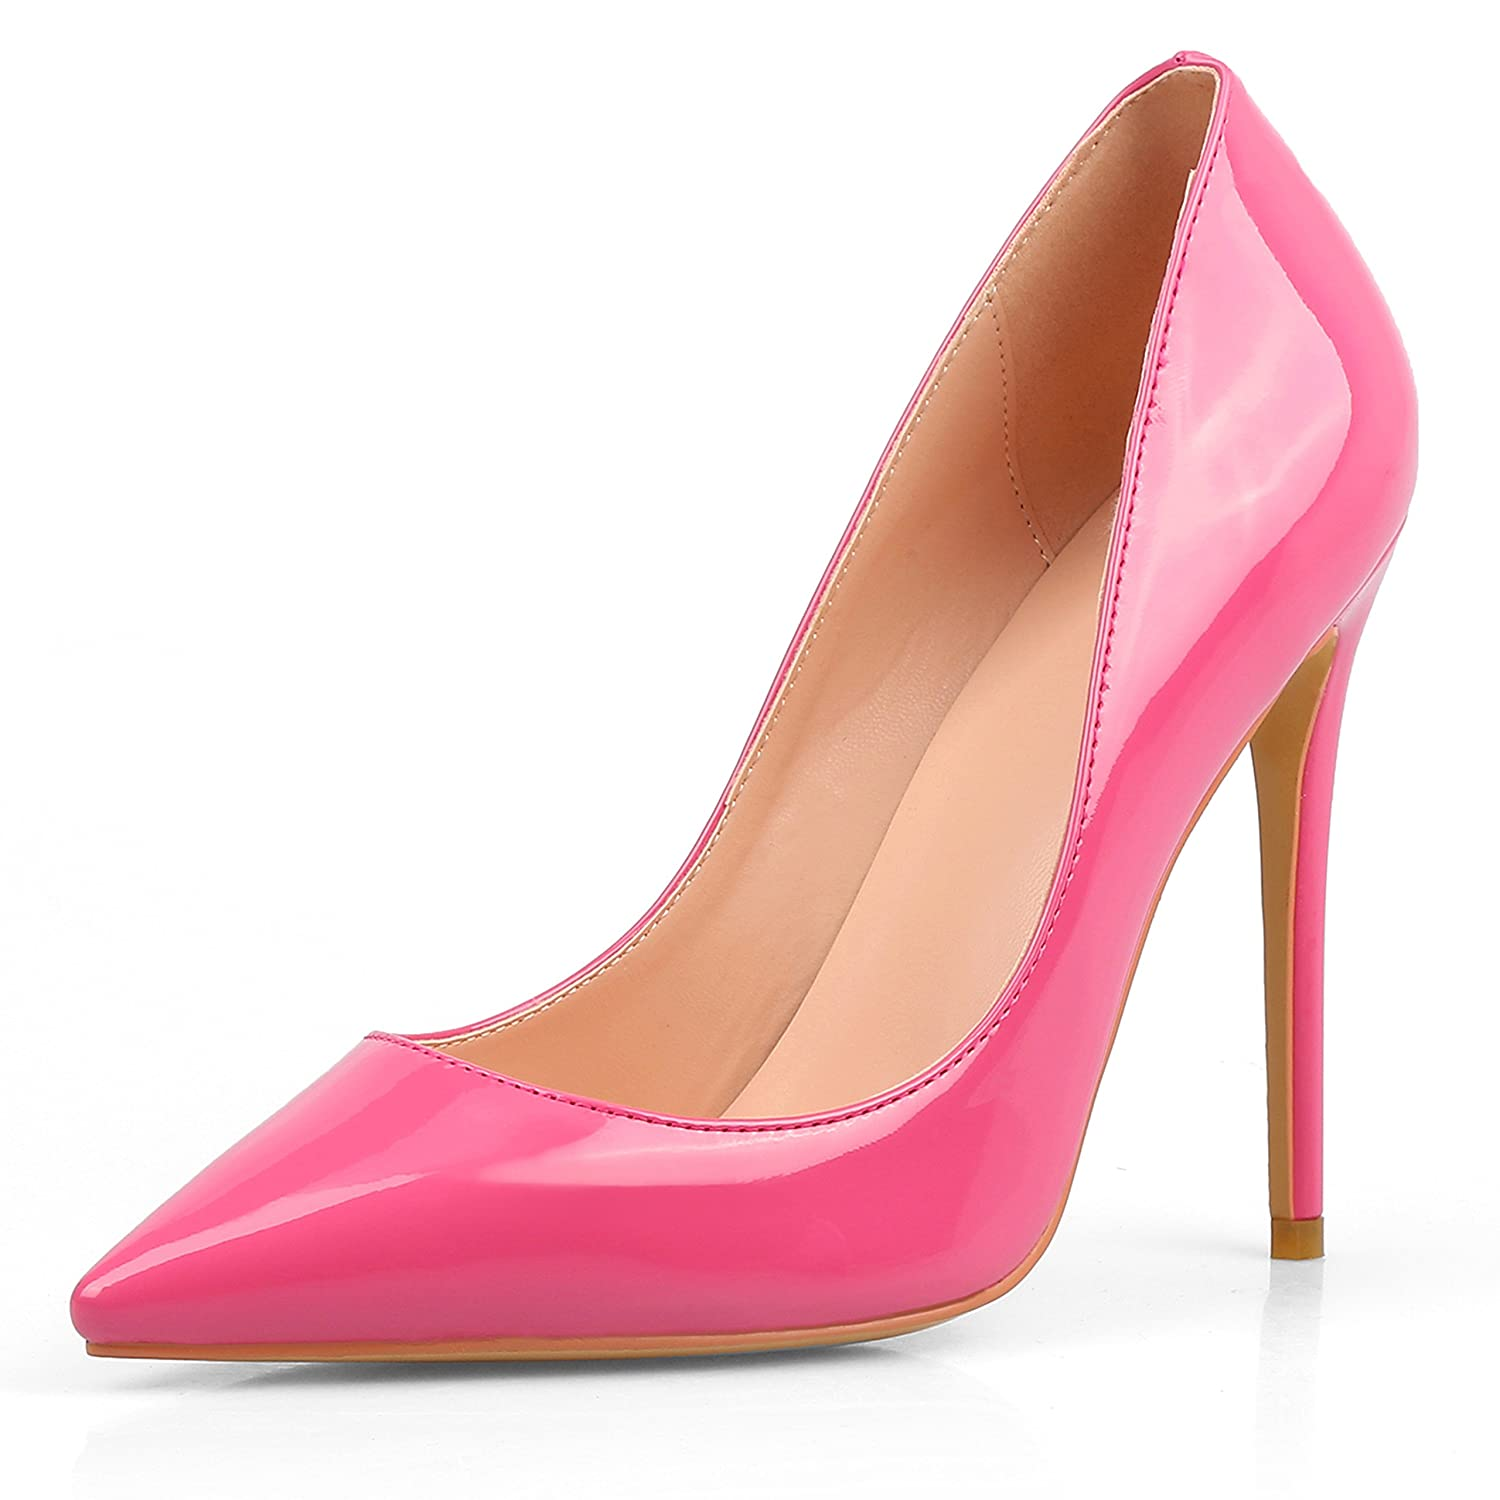 Chris-T Womens Formal Pointed Toe Pumps Basic Shoes High Heel Stilettos Sexy Slip On Dress Shoes Size 4-15 US B075F6GGPM 6 B(M) US|Pink/Red S0le(bottom)